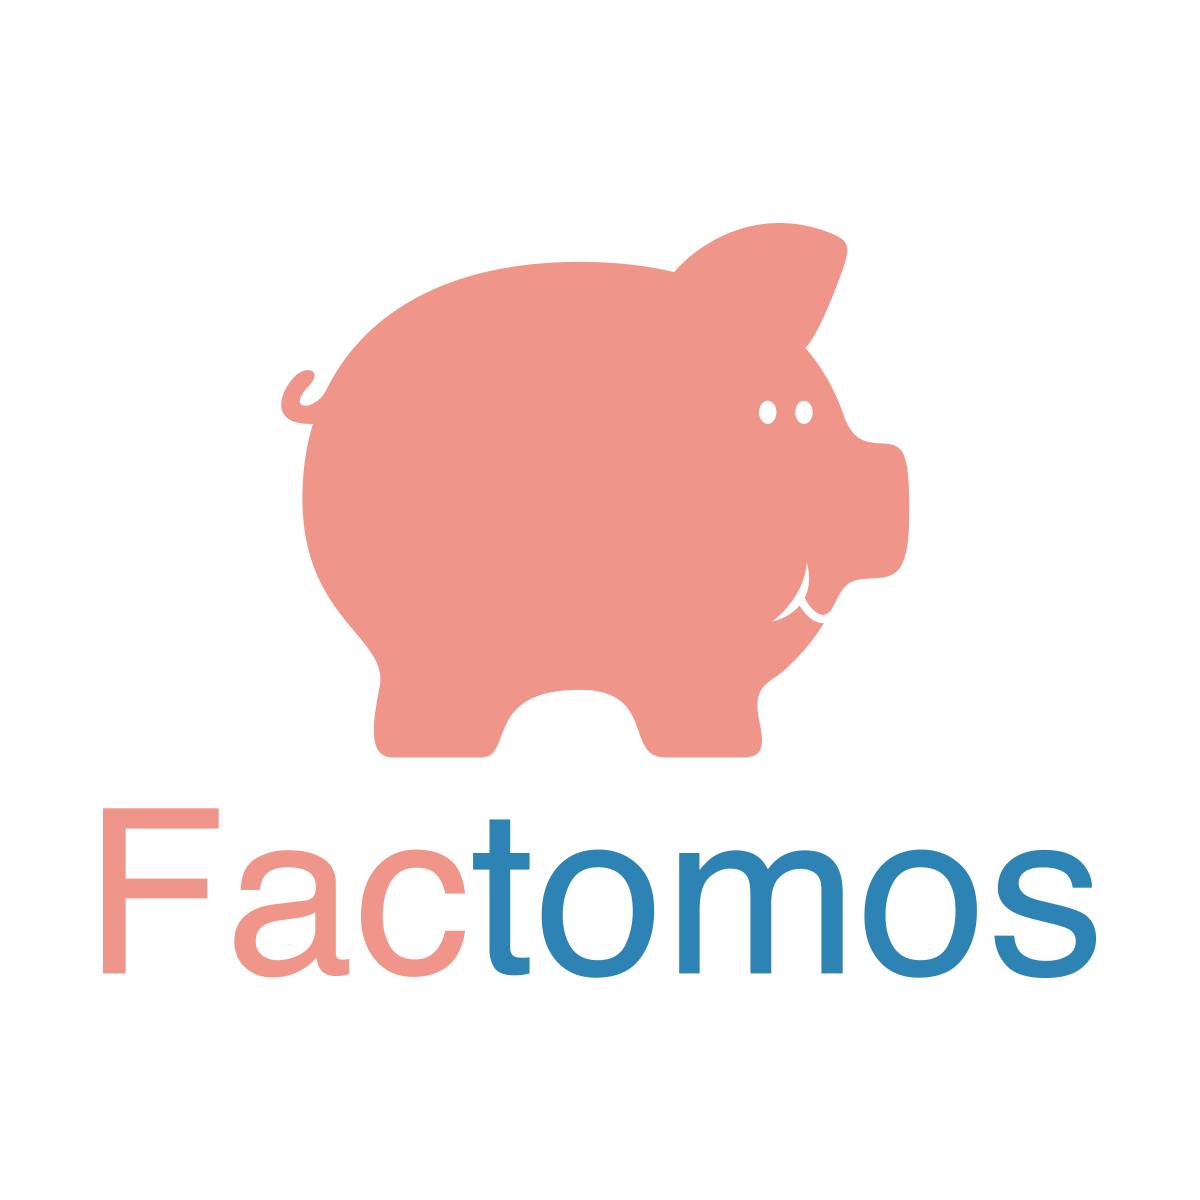 Factomos logo